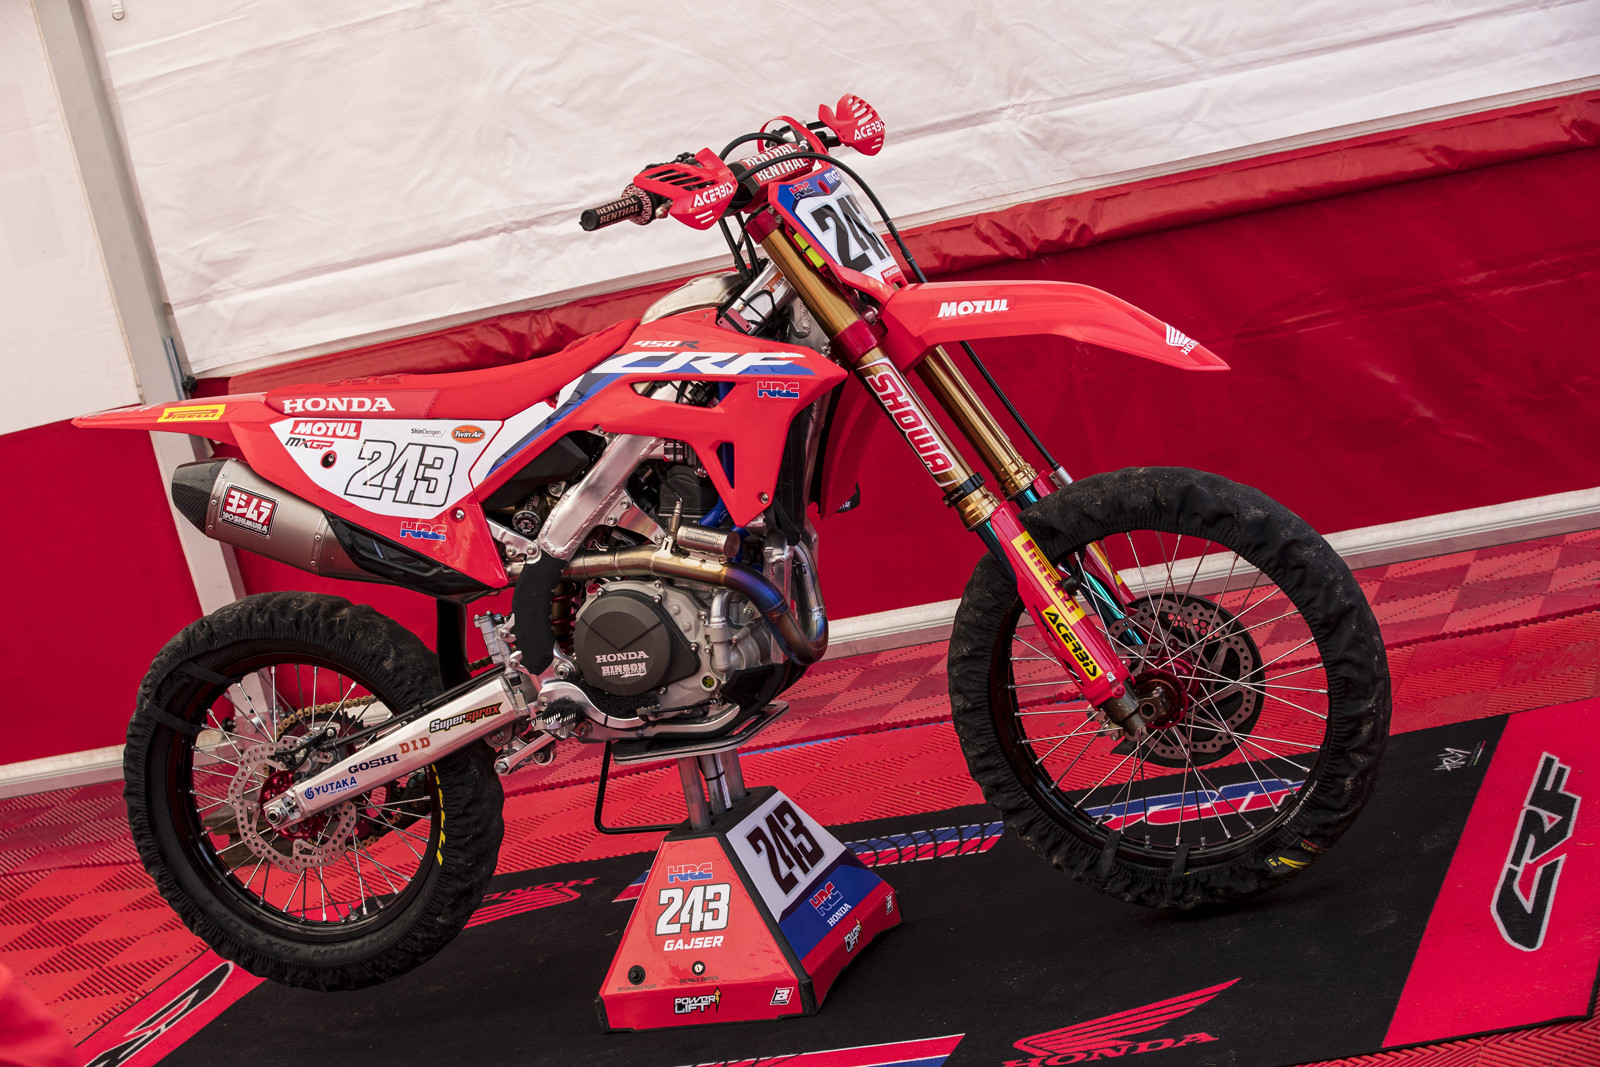 Now to what we've been waiting for... Some real shots of Tim Gajser's 2021(?) Honda CRF450R